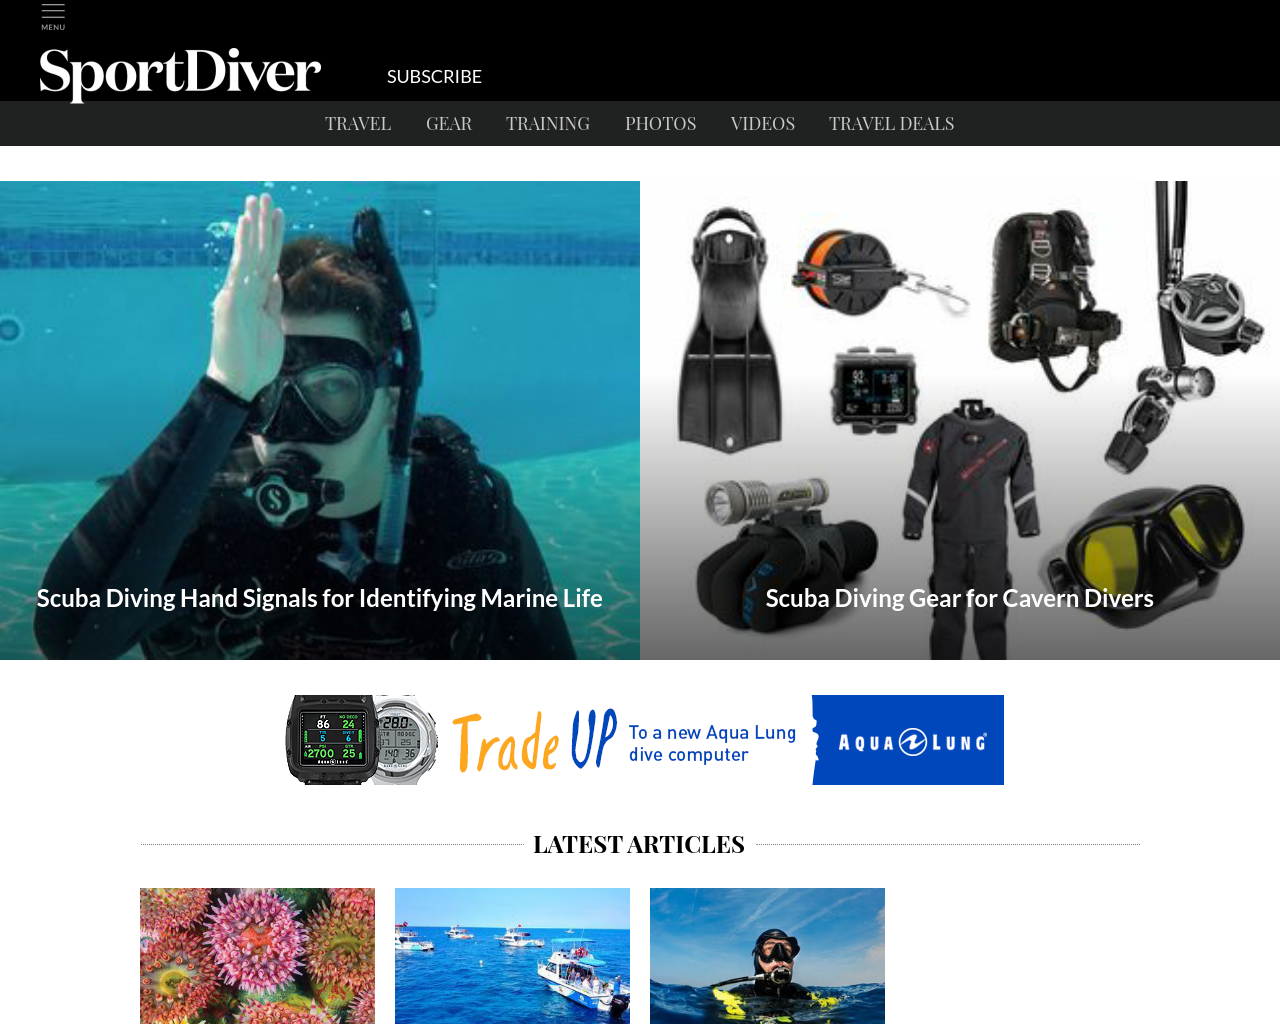 SportDiver-Advertising-Reviews-Pricing